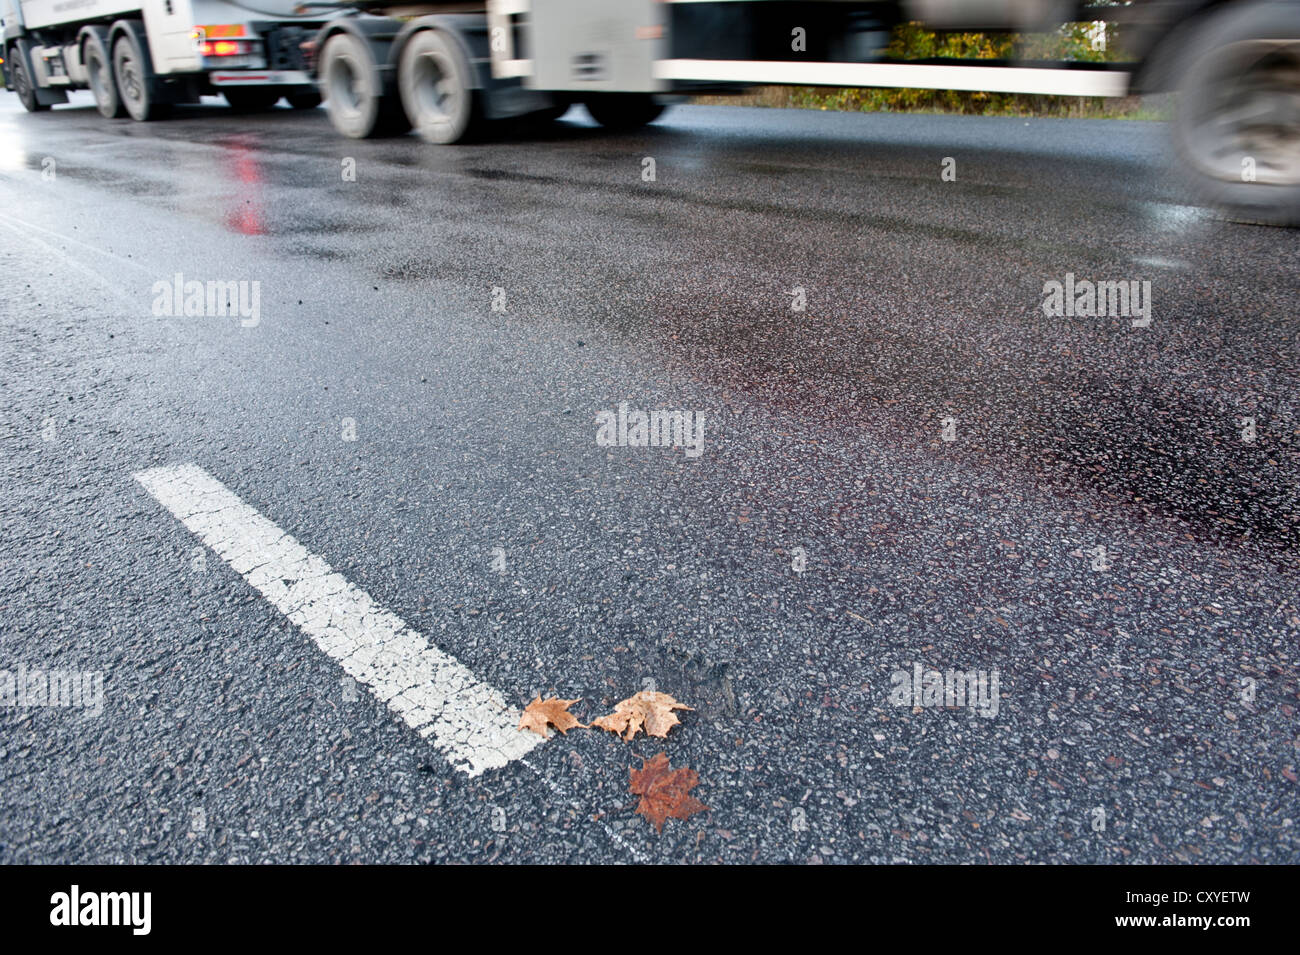 Truck driving on treacherous and slippery road due to rain or frost Stock Photo